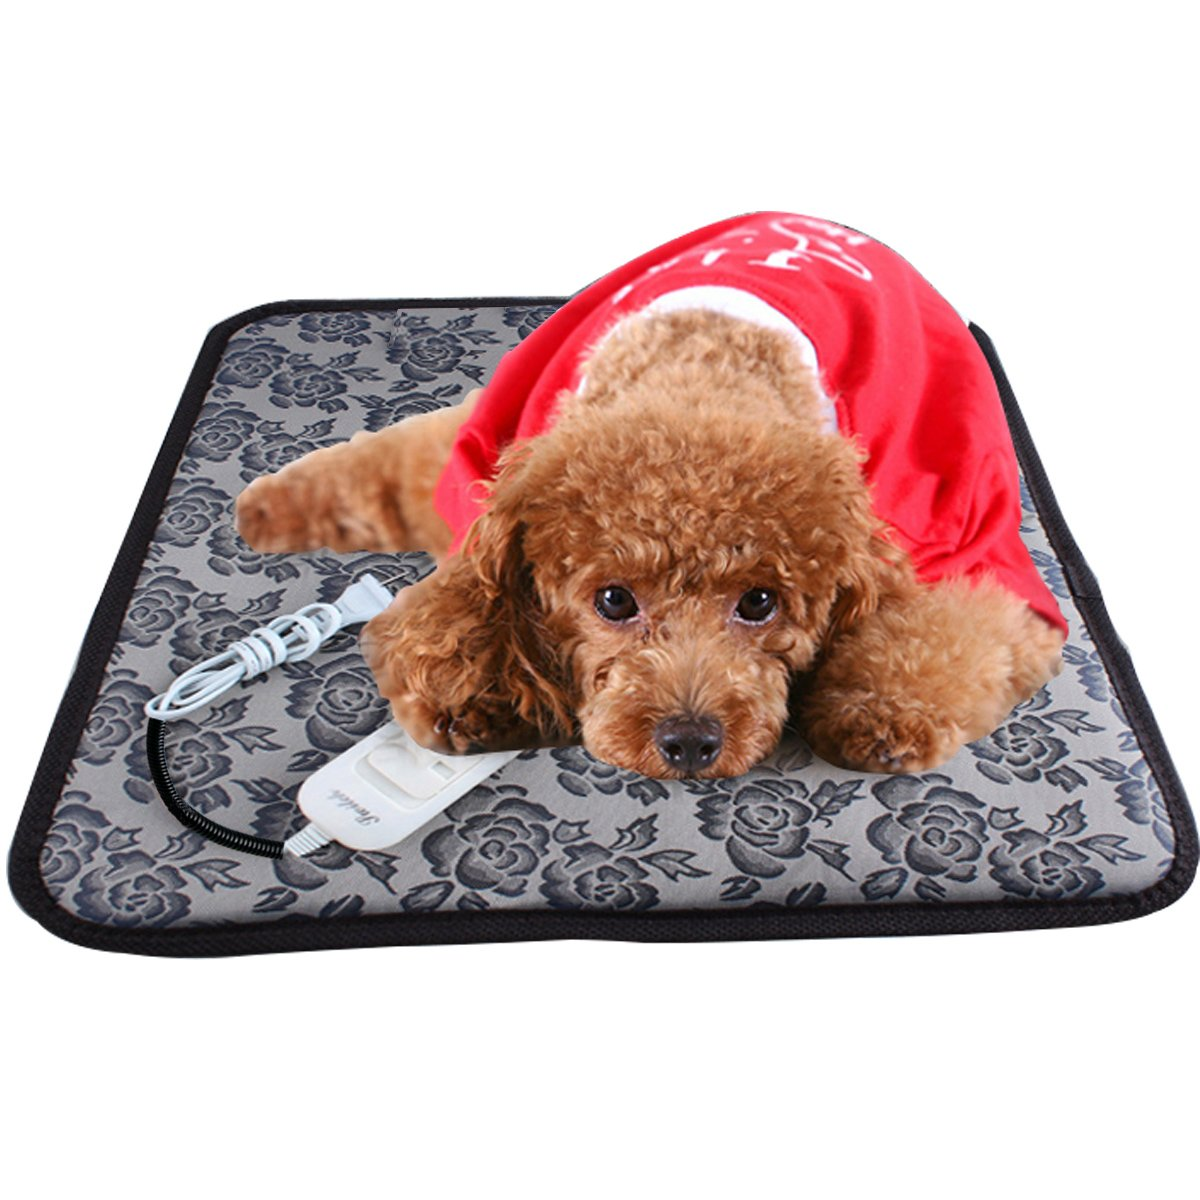 Aopet Dog Heating Pad Pet Electric Blanket Heater Mat Cat Warming Waterproof Heated Beds with Chew Resistant Cord Overheat Protection Warmer Grey 17.7''x17.7''